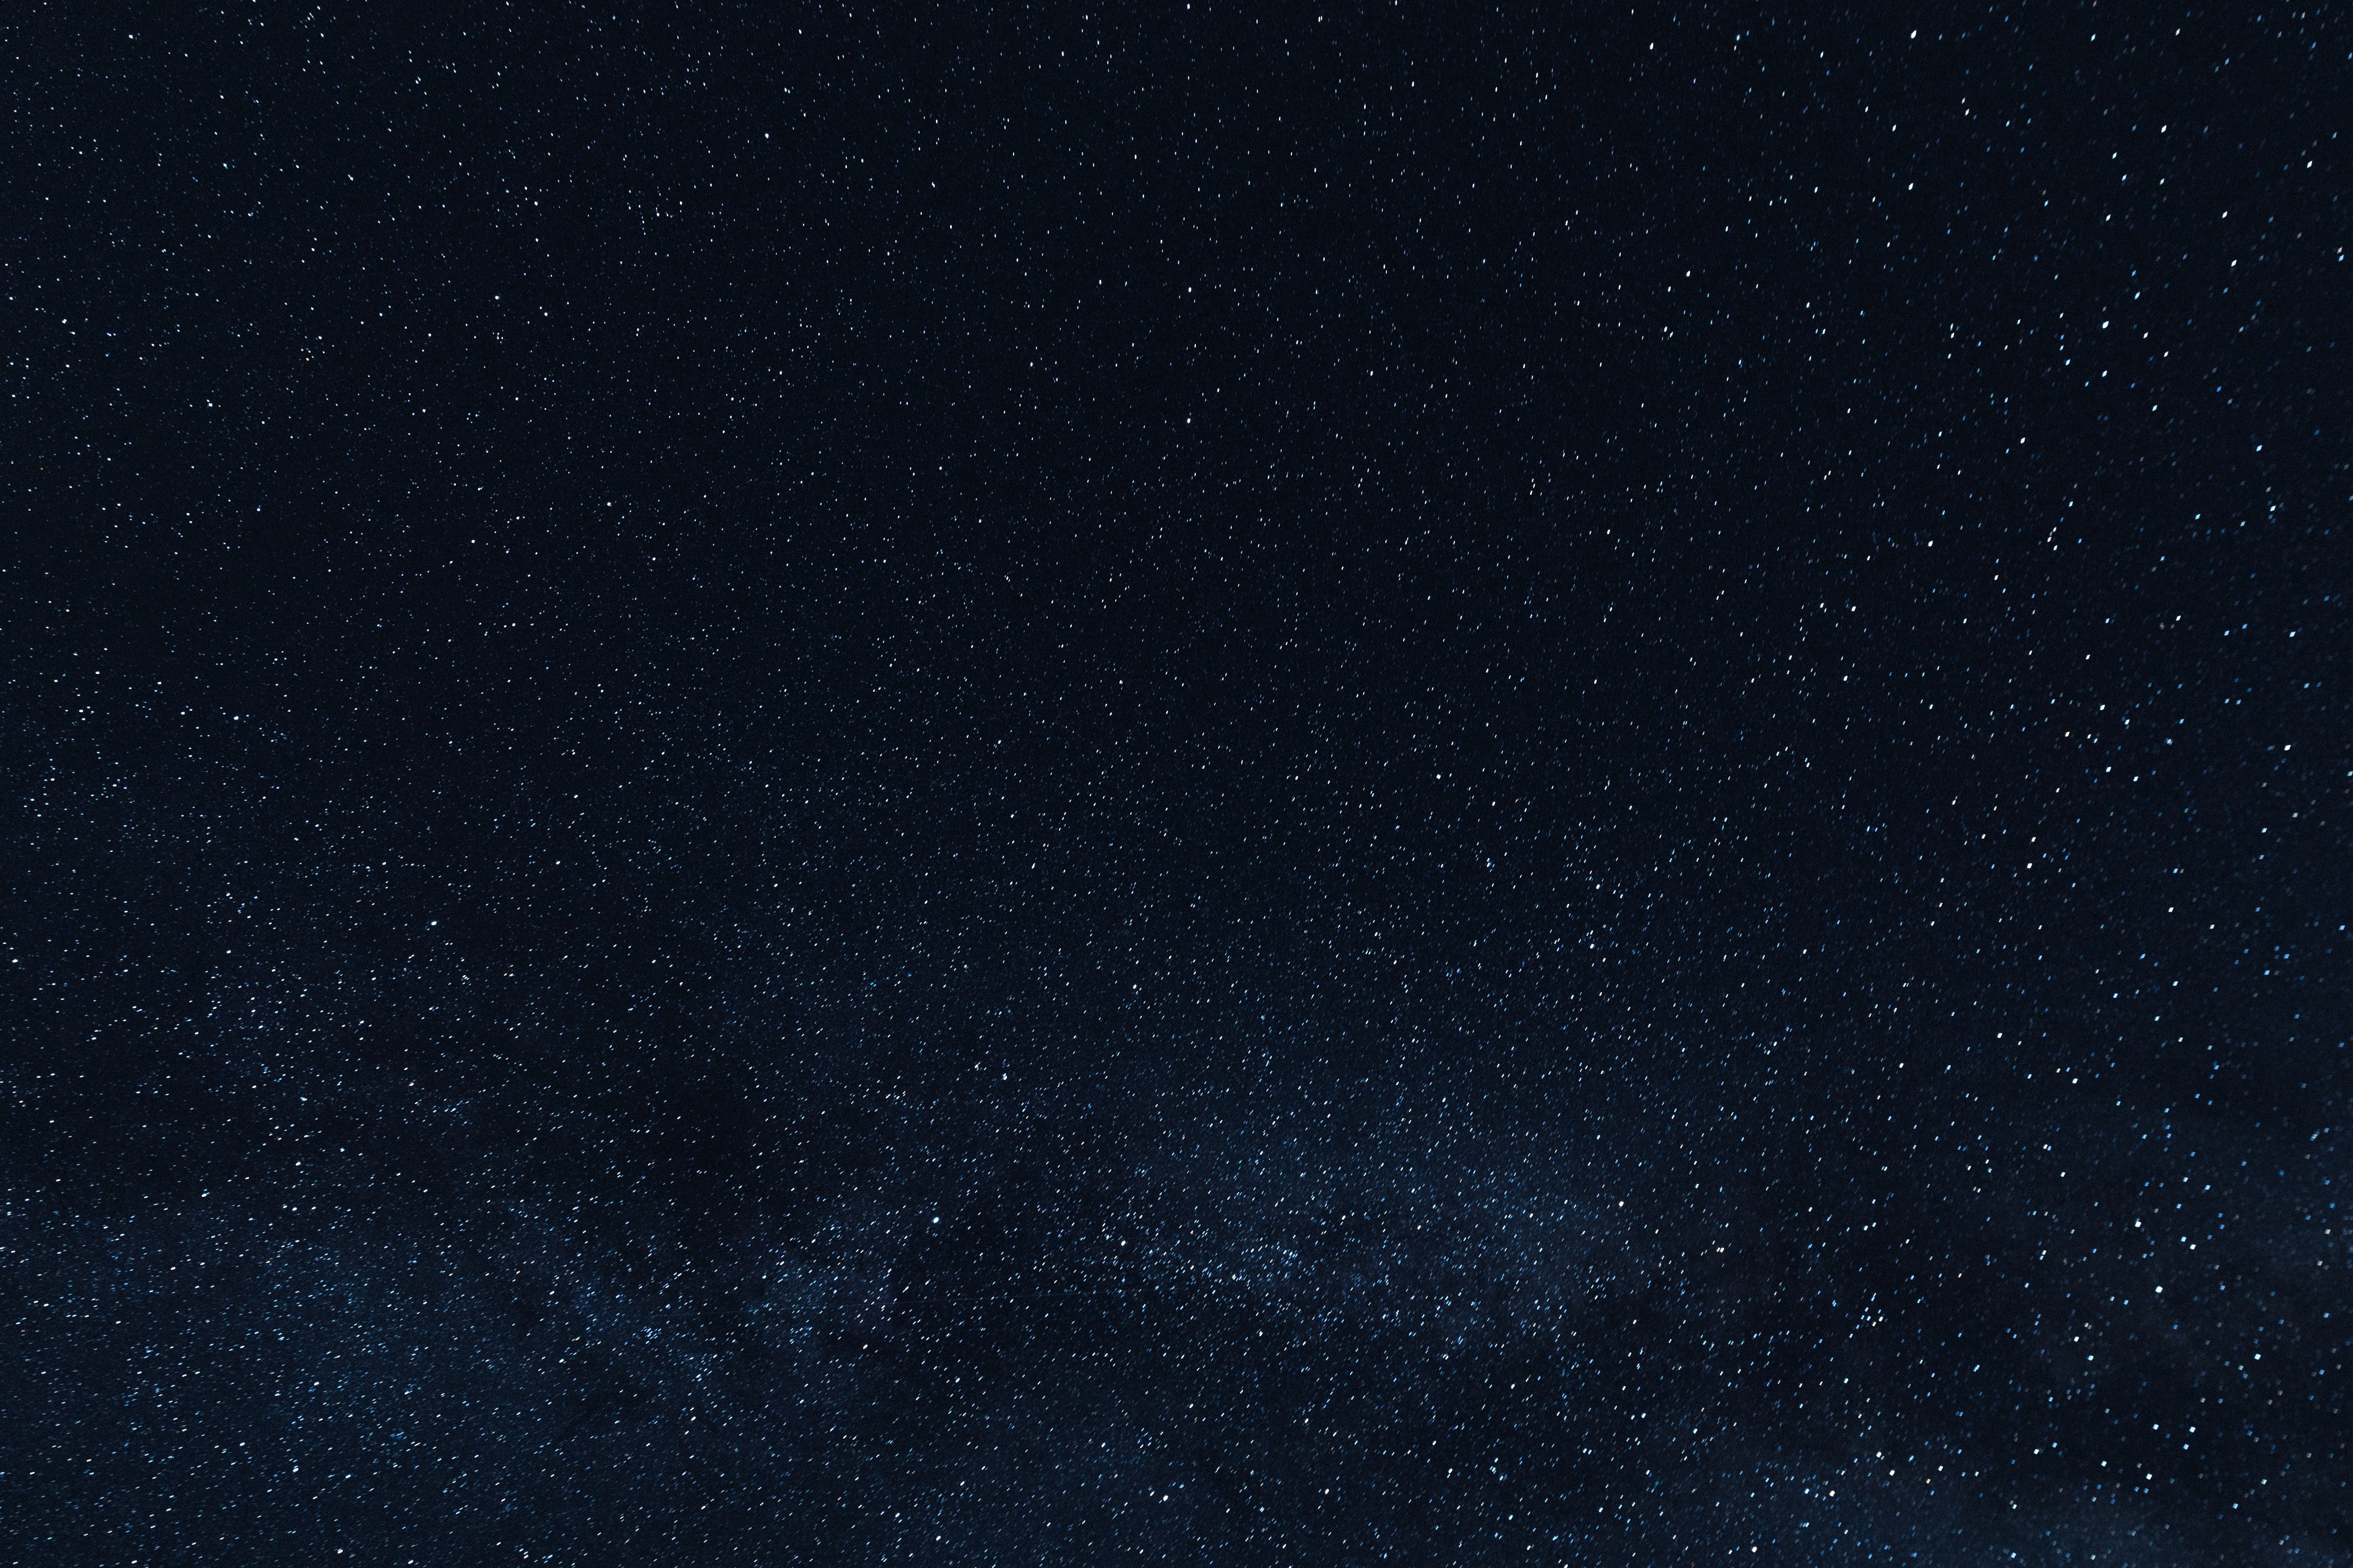 A wide view of a dark night sky, shot as though the viewer is looking up into the dim light of distant stars.